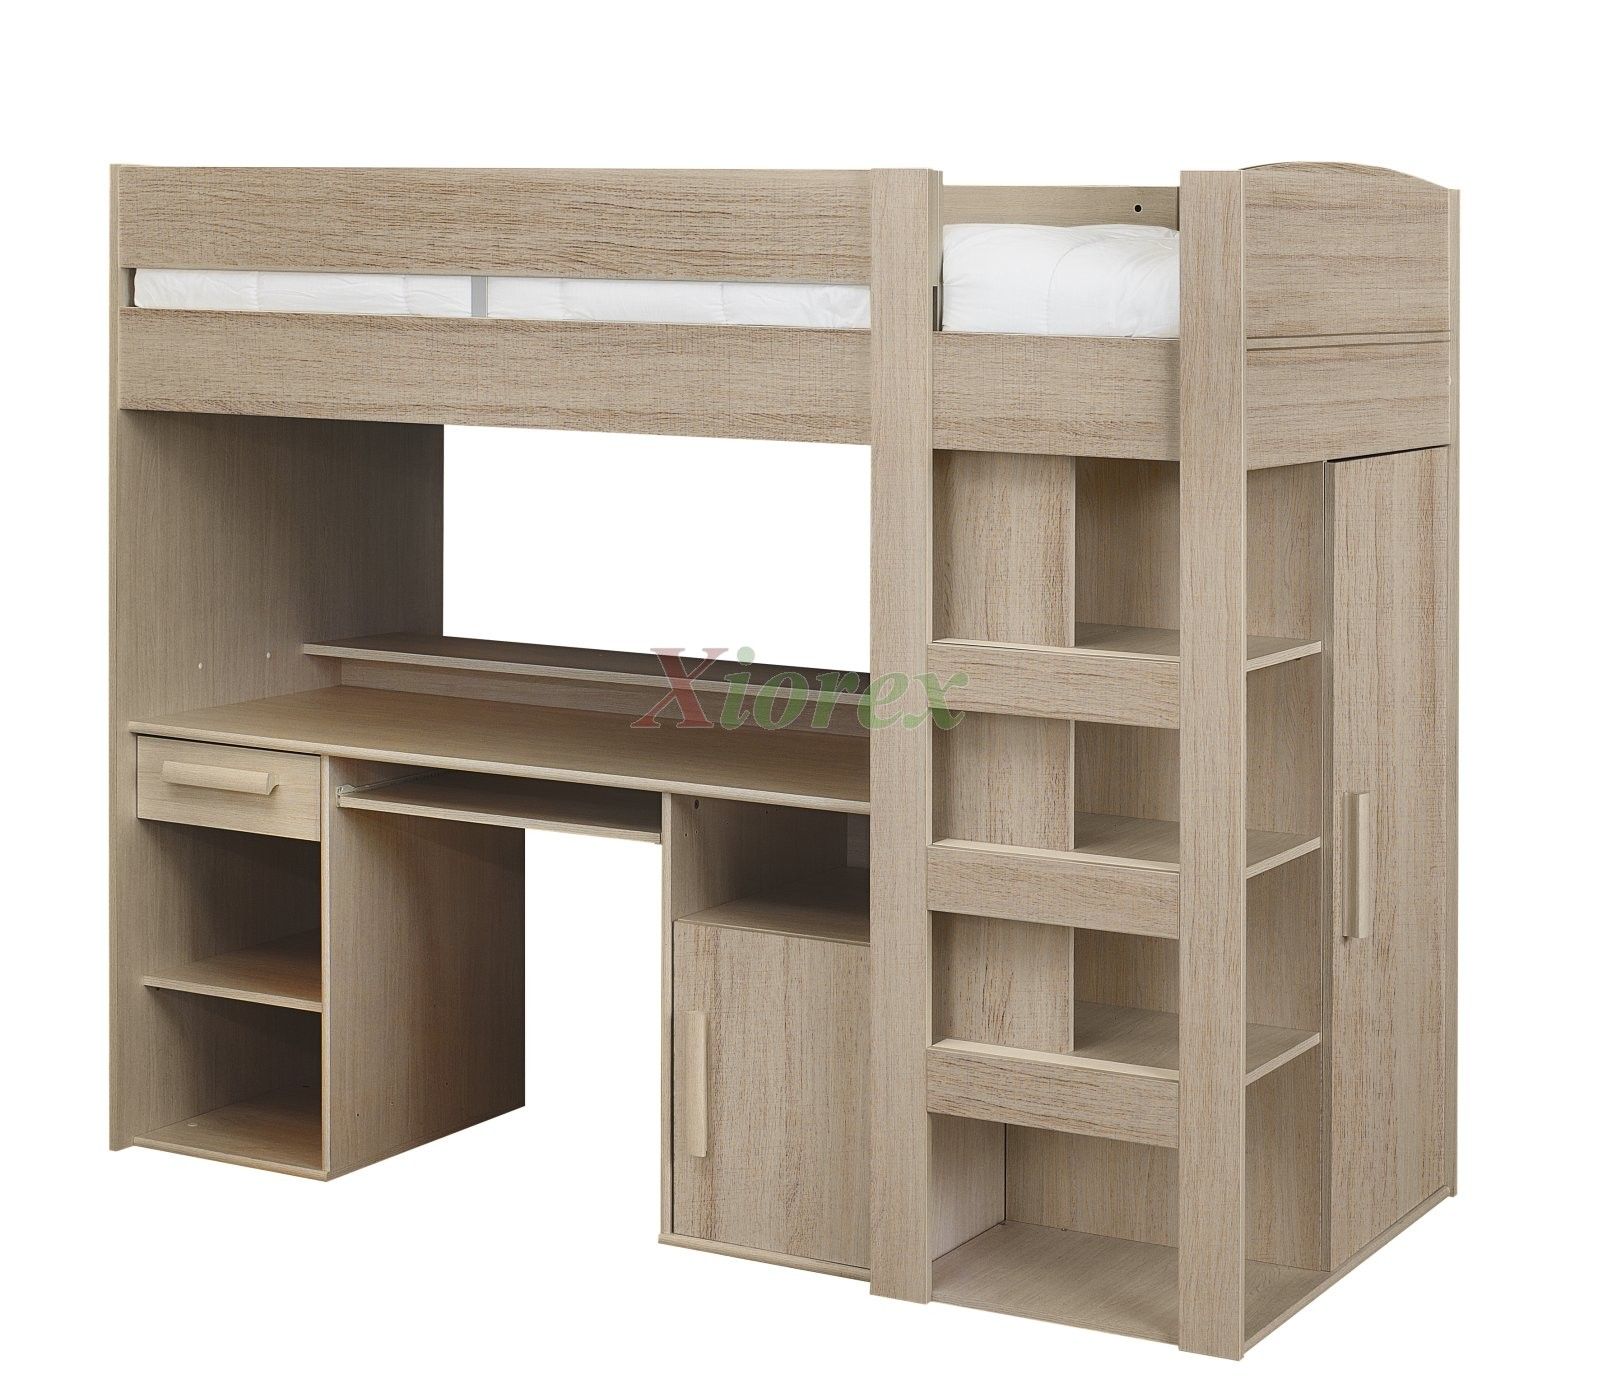 Bunk beds with desk and closet - Montana Loft Beds With Closet And Desk By Gautier Furniture Xiorex